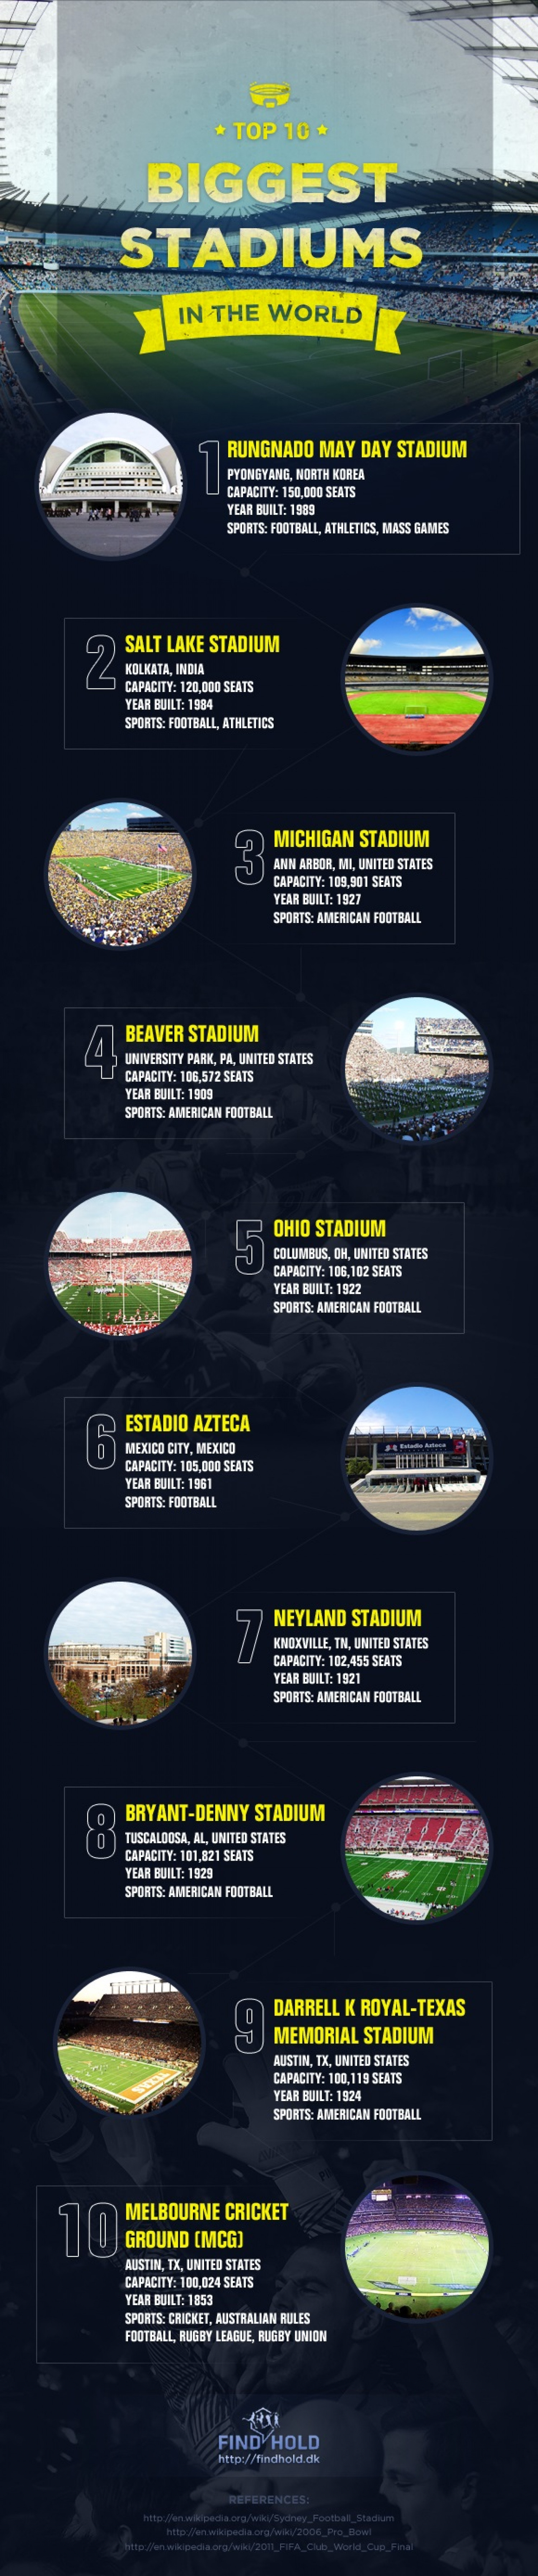 Top 10 Biggest Stadiums in the World Infographic